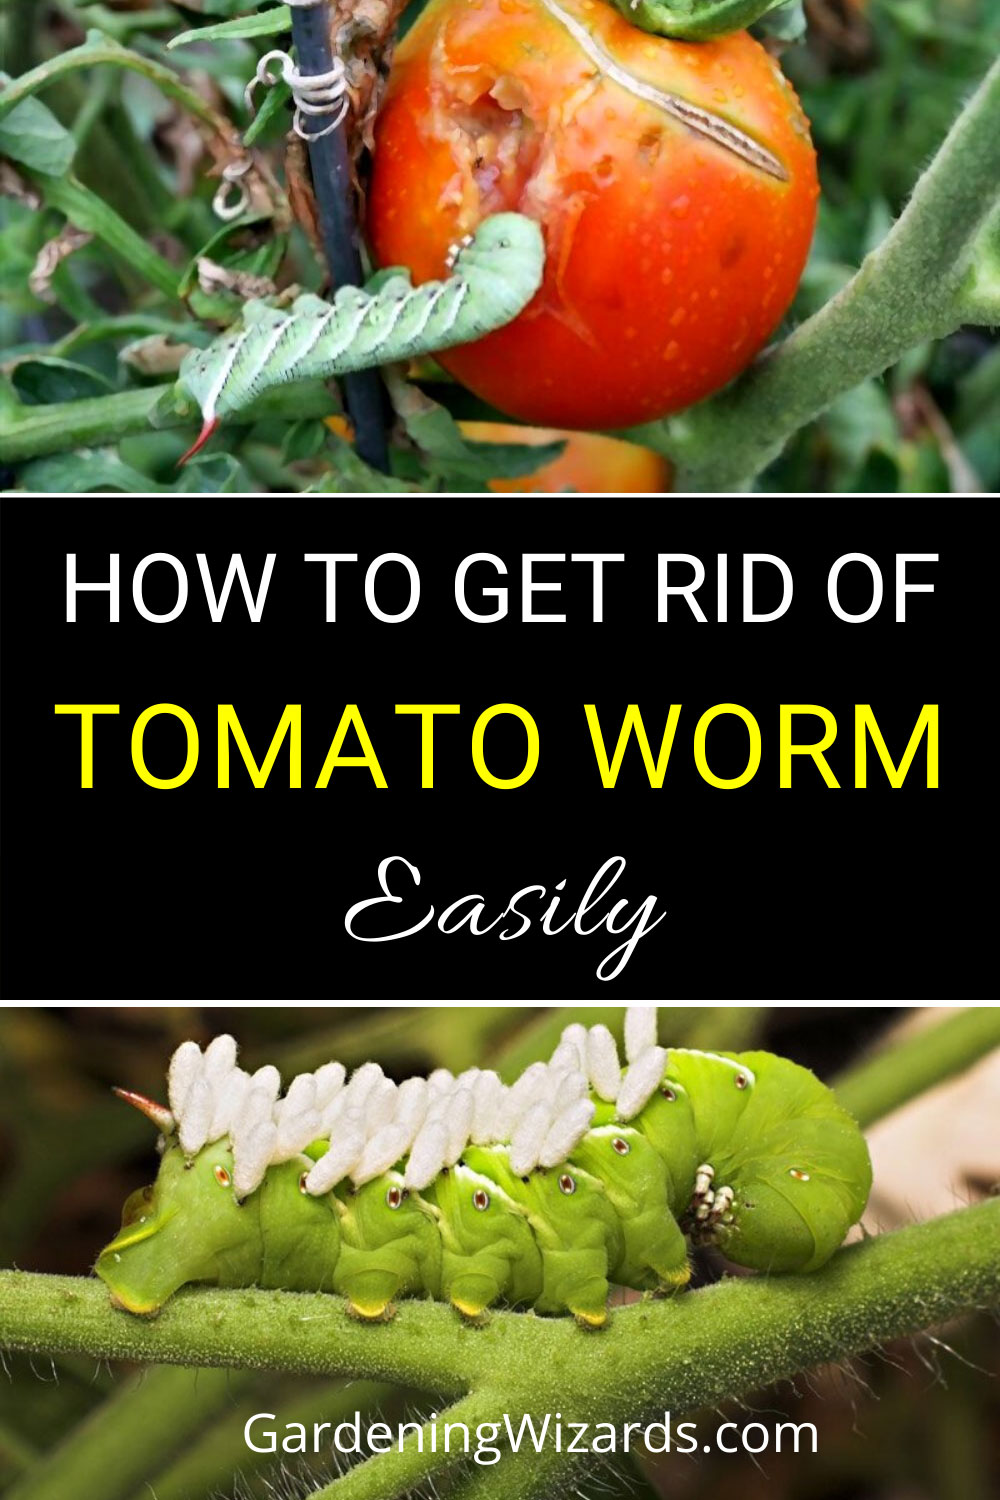 How To Get Rid Of Tomato Worms